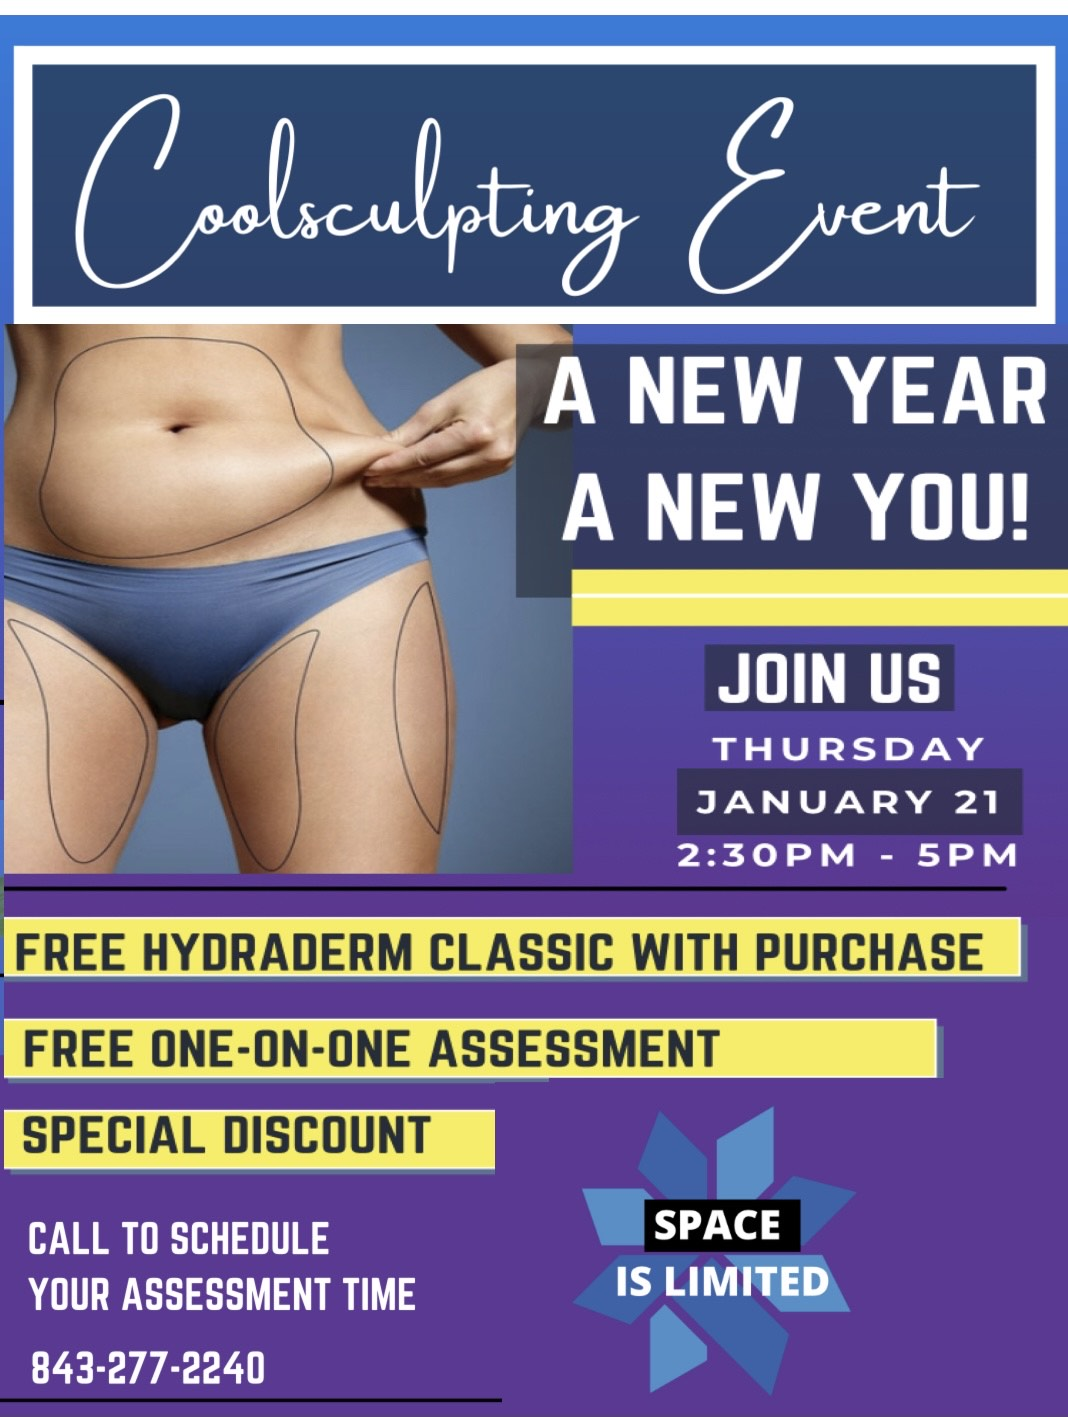 Cool sculpting event Charleston Southern Cosmetic Laser